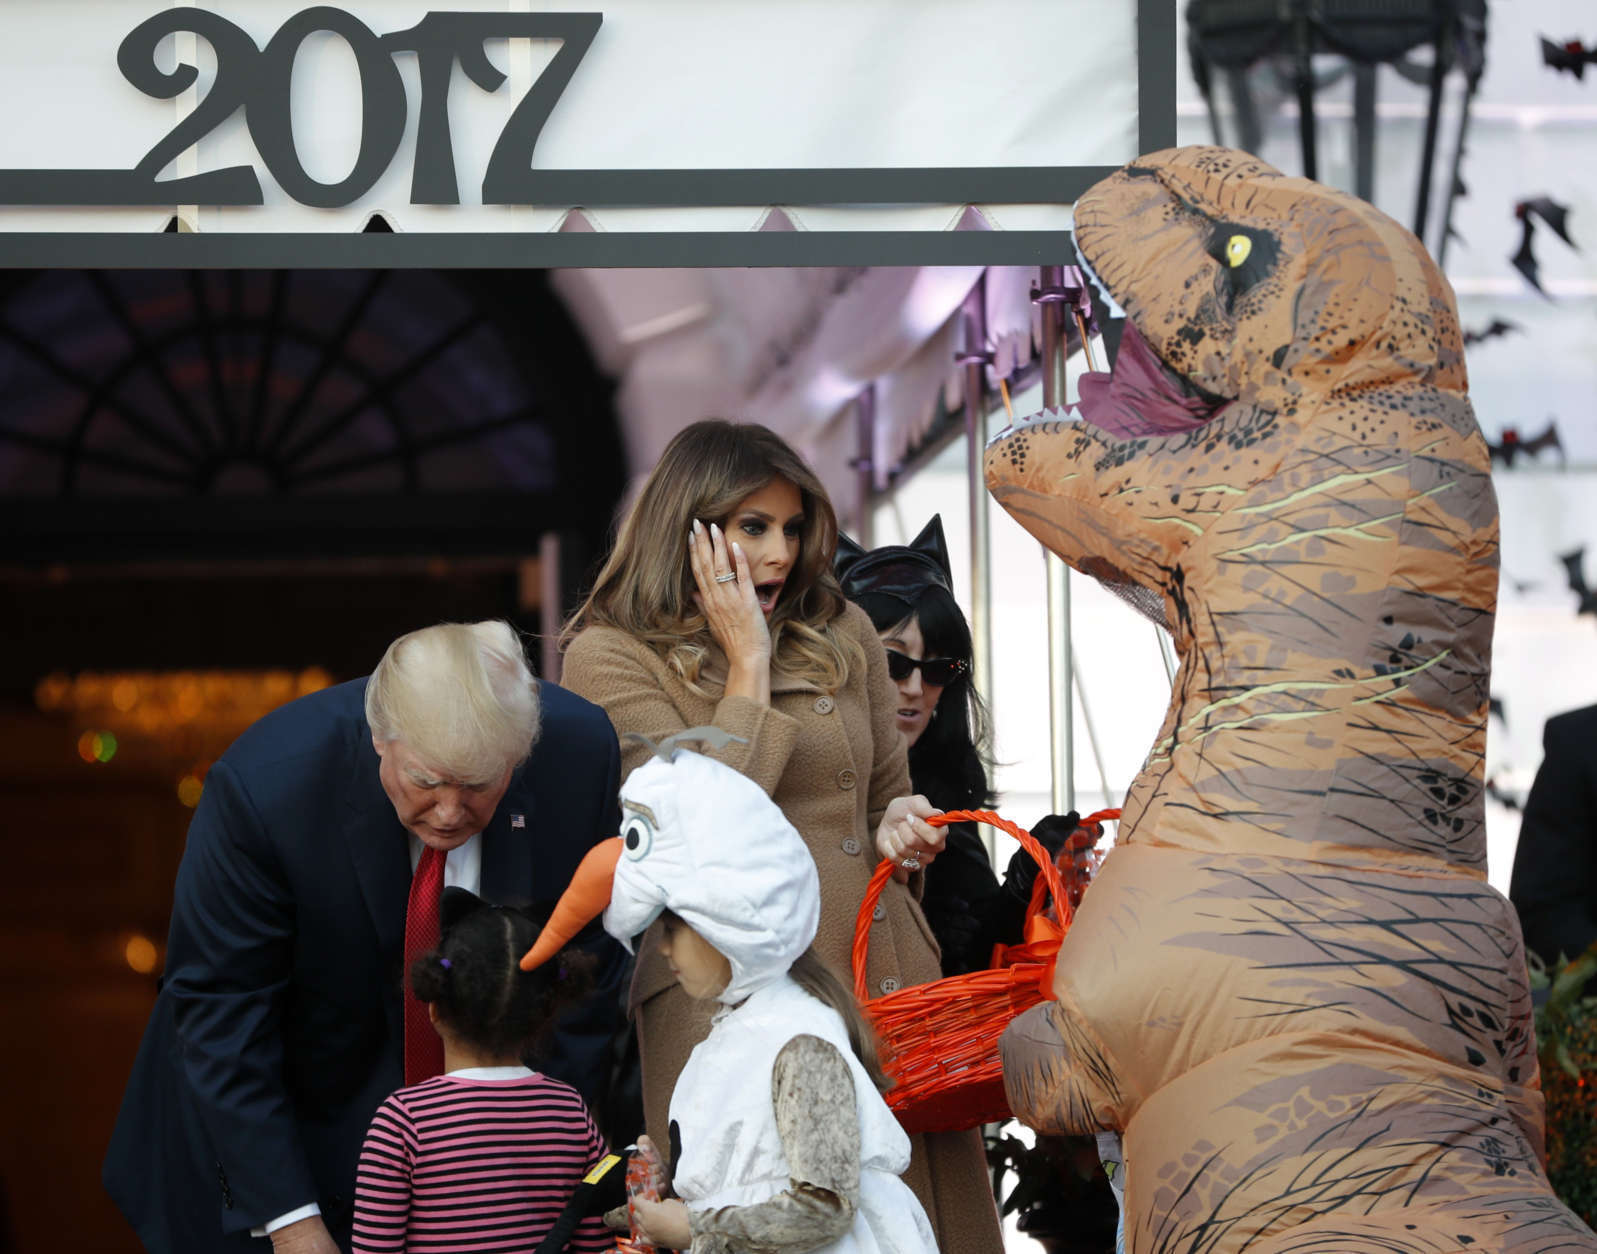 President Donald Trump and first lady Melania Trump hand out treats as they welcome children from the Washington area and children of military families to trick-or-treat celebrating Halloween at the South Lawn of the White House in Washington, Monday, Oct. 30, 2017. (AP Photo/Pablo Martinez Monsivais)